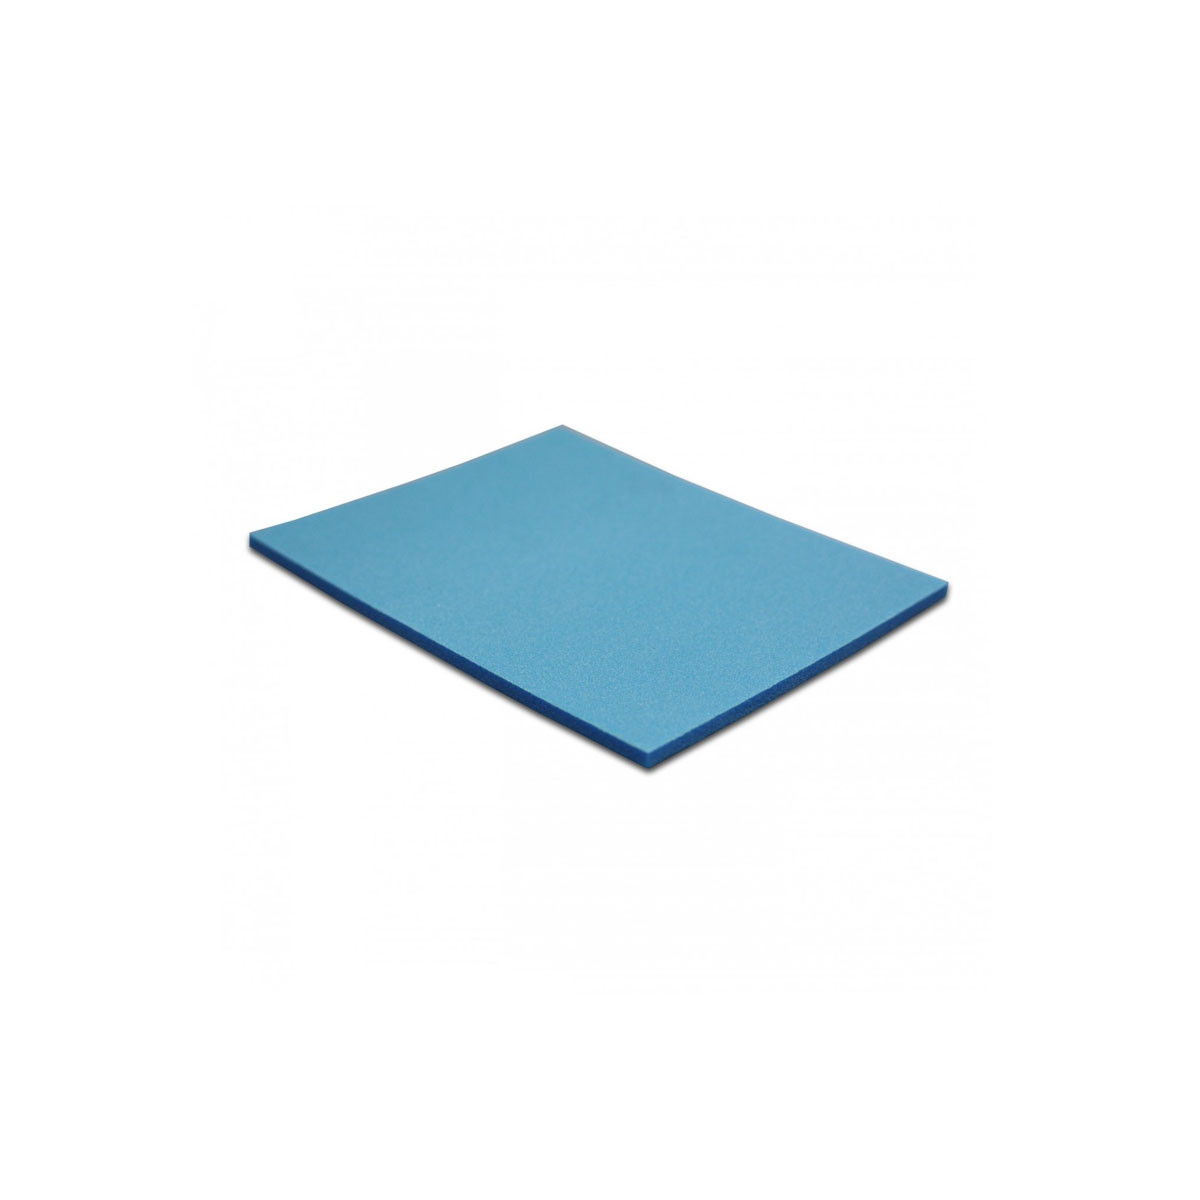 Sanding Pad - 1000 Grit (replaces the 220 grit)